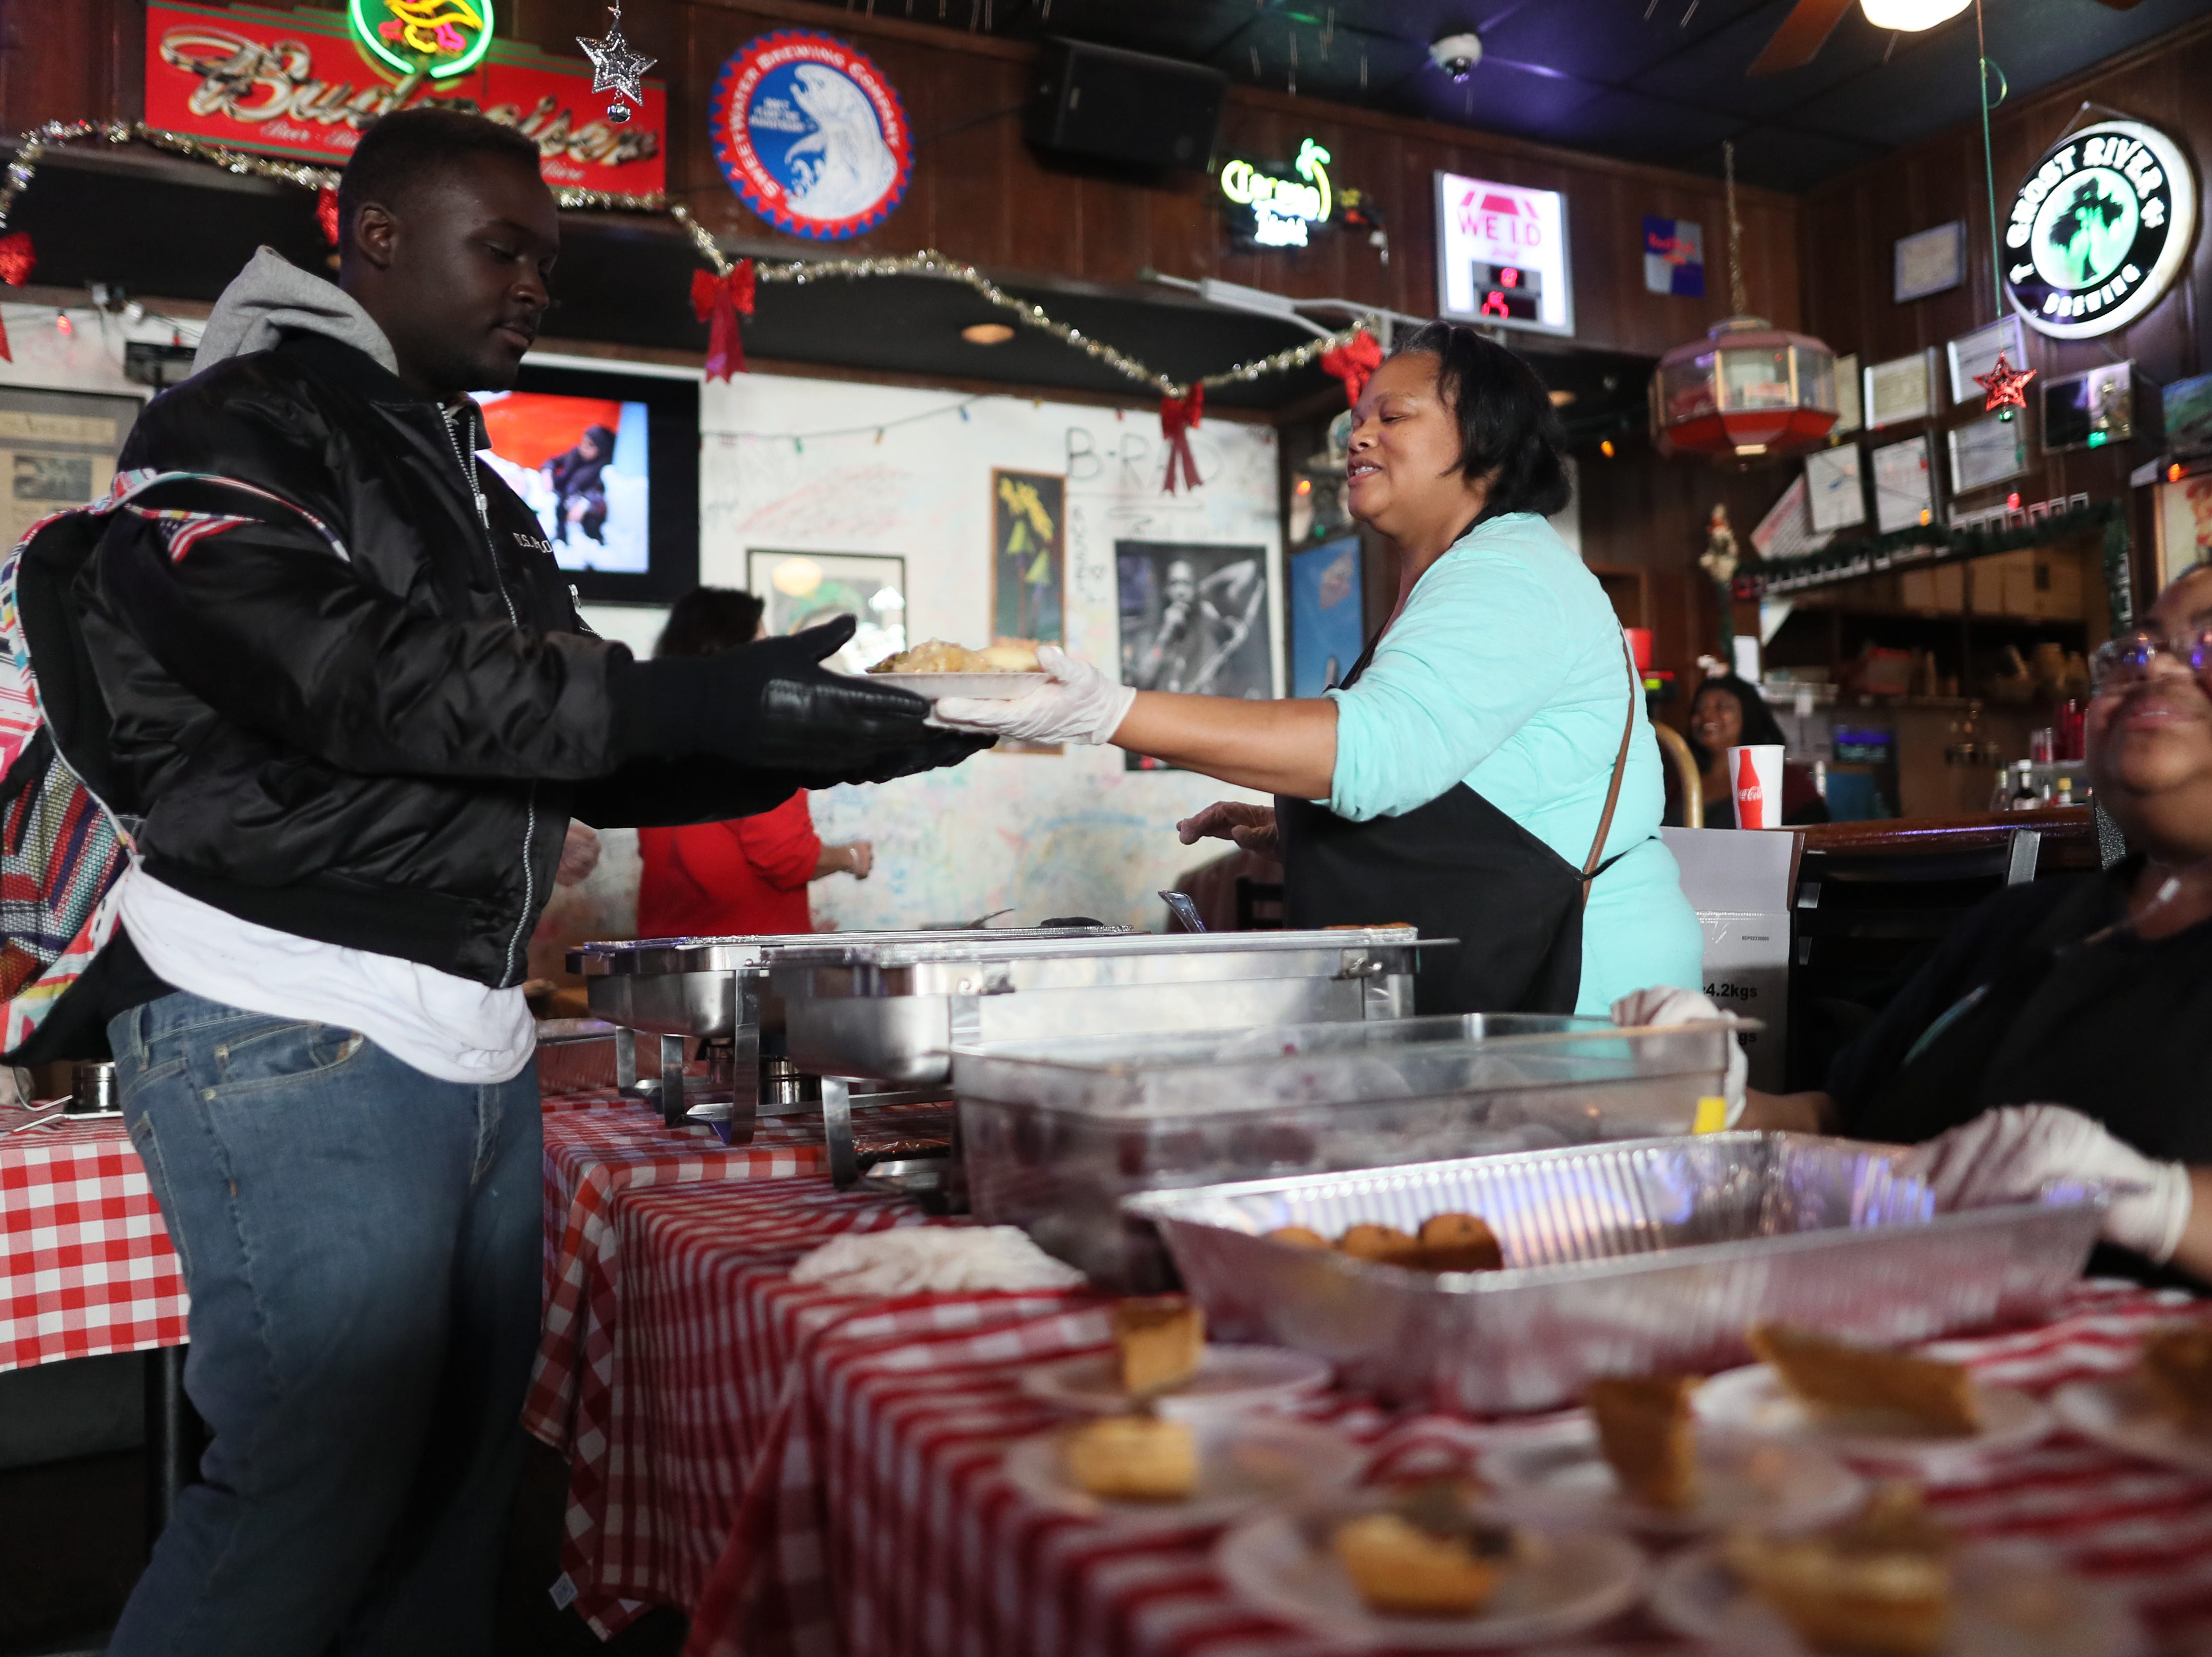 Patrice Thompson, center, and her cousin Shericka Cotton serve free meals and hand out warm clothing at the Huey's downtown restaurant on Christmas Day Tuesday, Dec. 25, 2018.